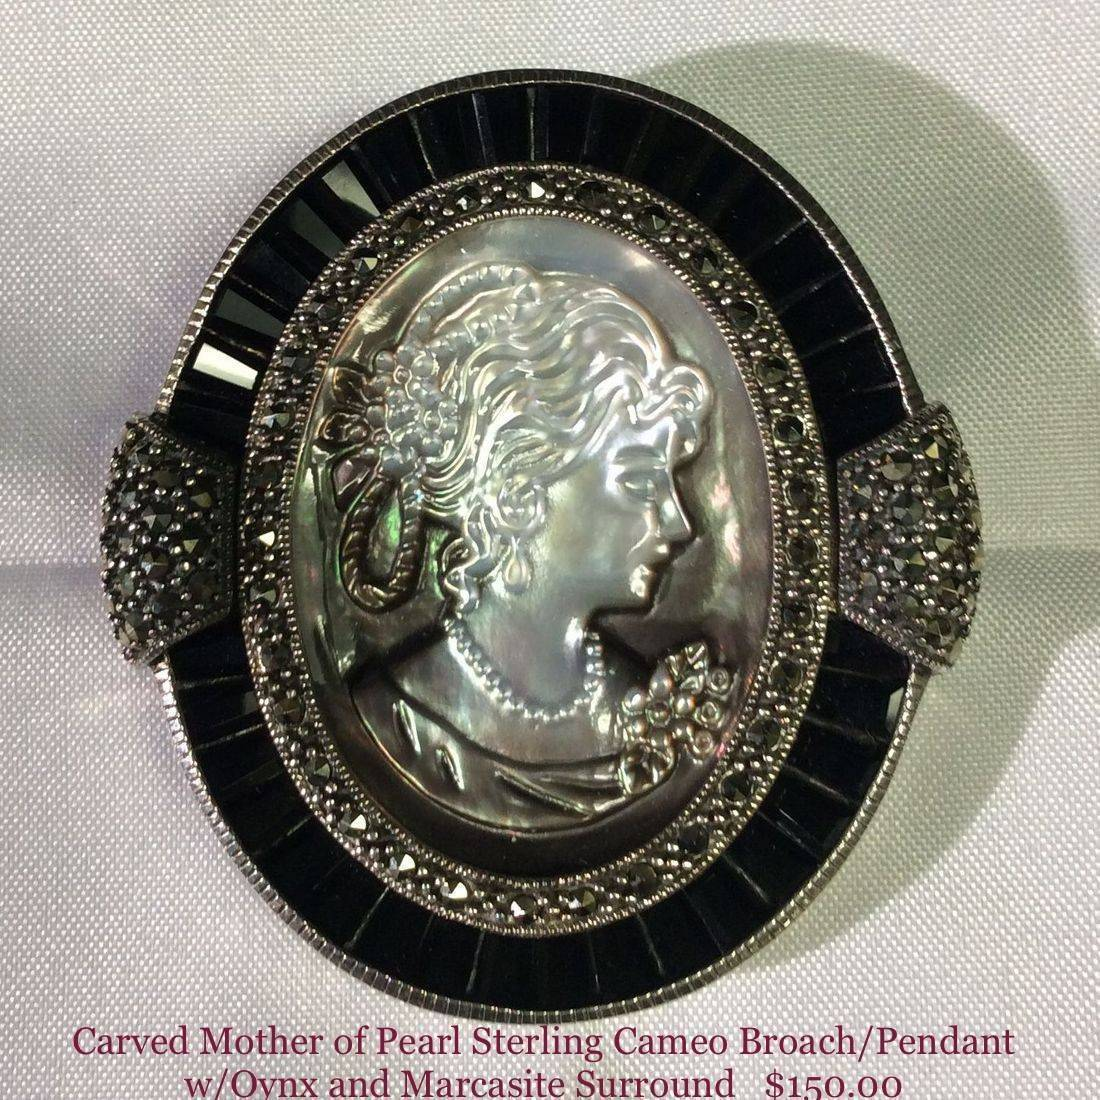 """Carved Mother of Pearl, 925 Sterling Silver, Cameo Brooch/pendant, w/Baguette-cut Oynx and Marcasite surround, 2-1/4"""" X 2""""  $150.00"""